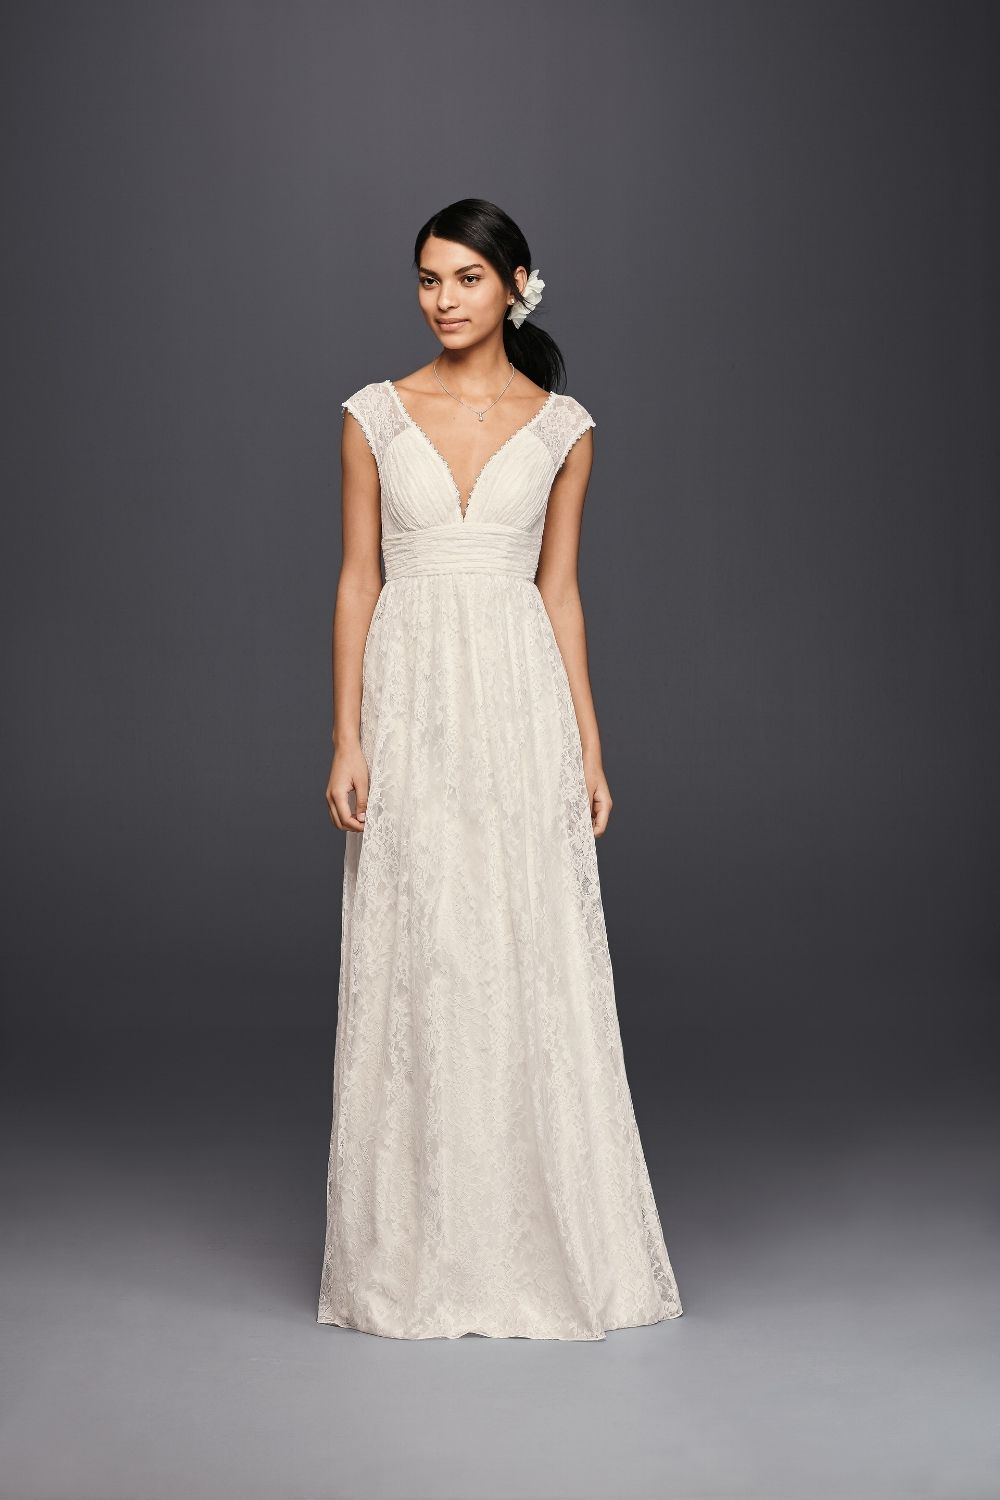 Lace Sheath Wedding Dress With Illusion Cap Sleeve By Galina Available At Davids Bridal